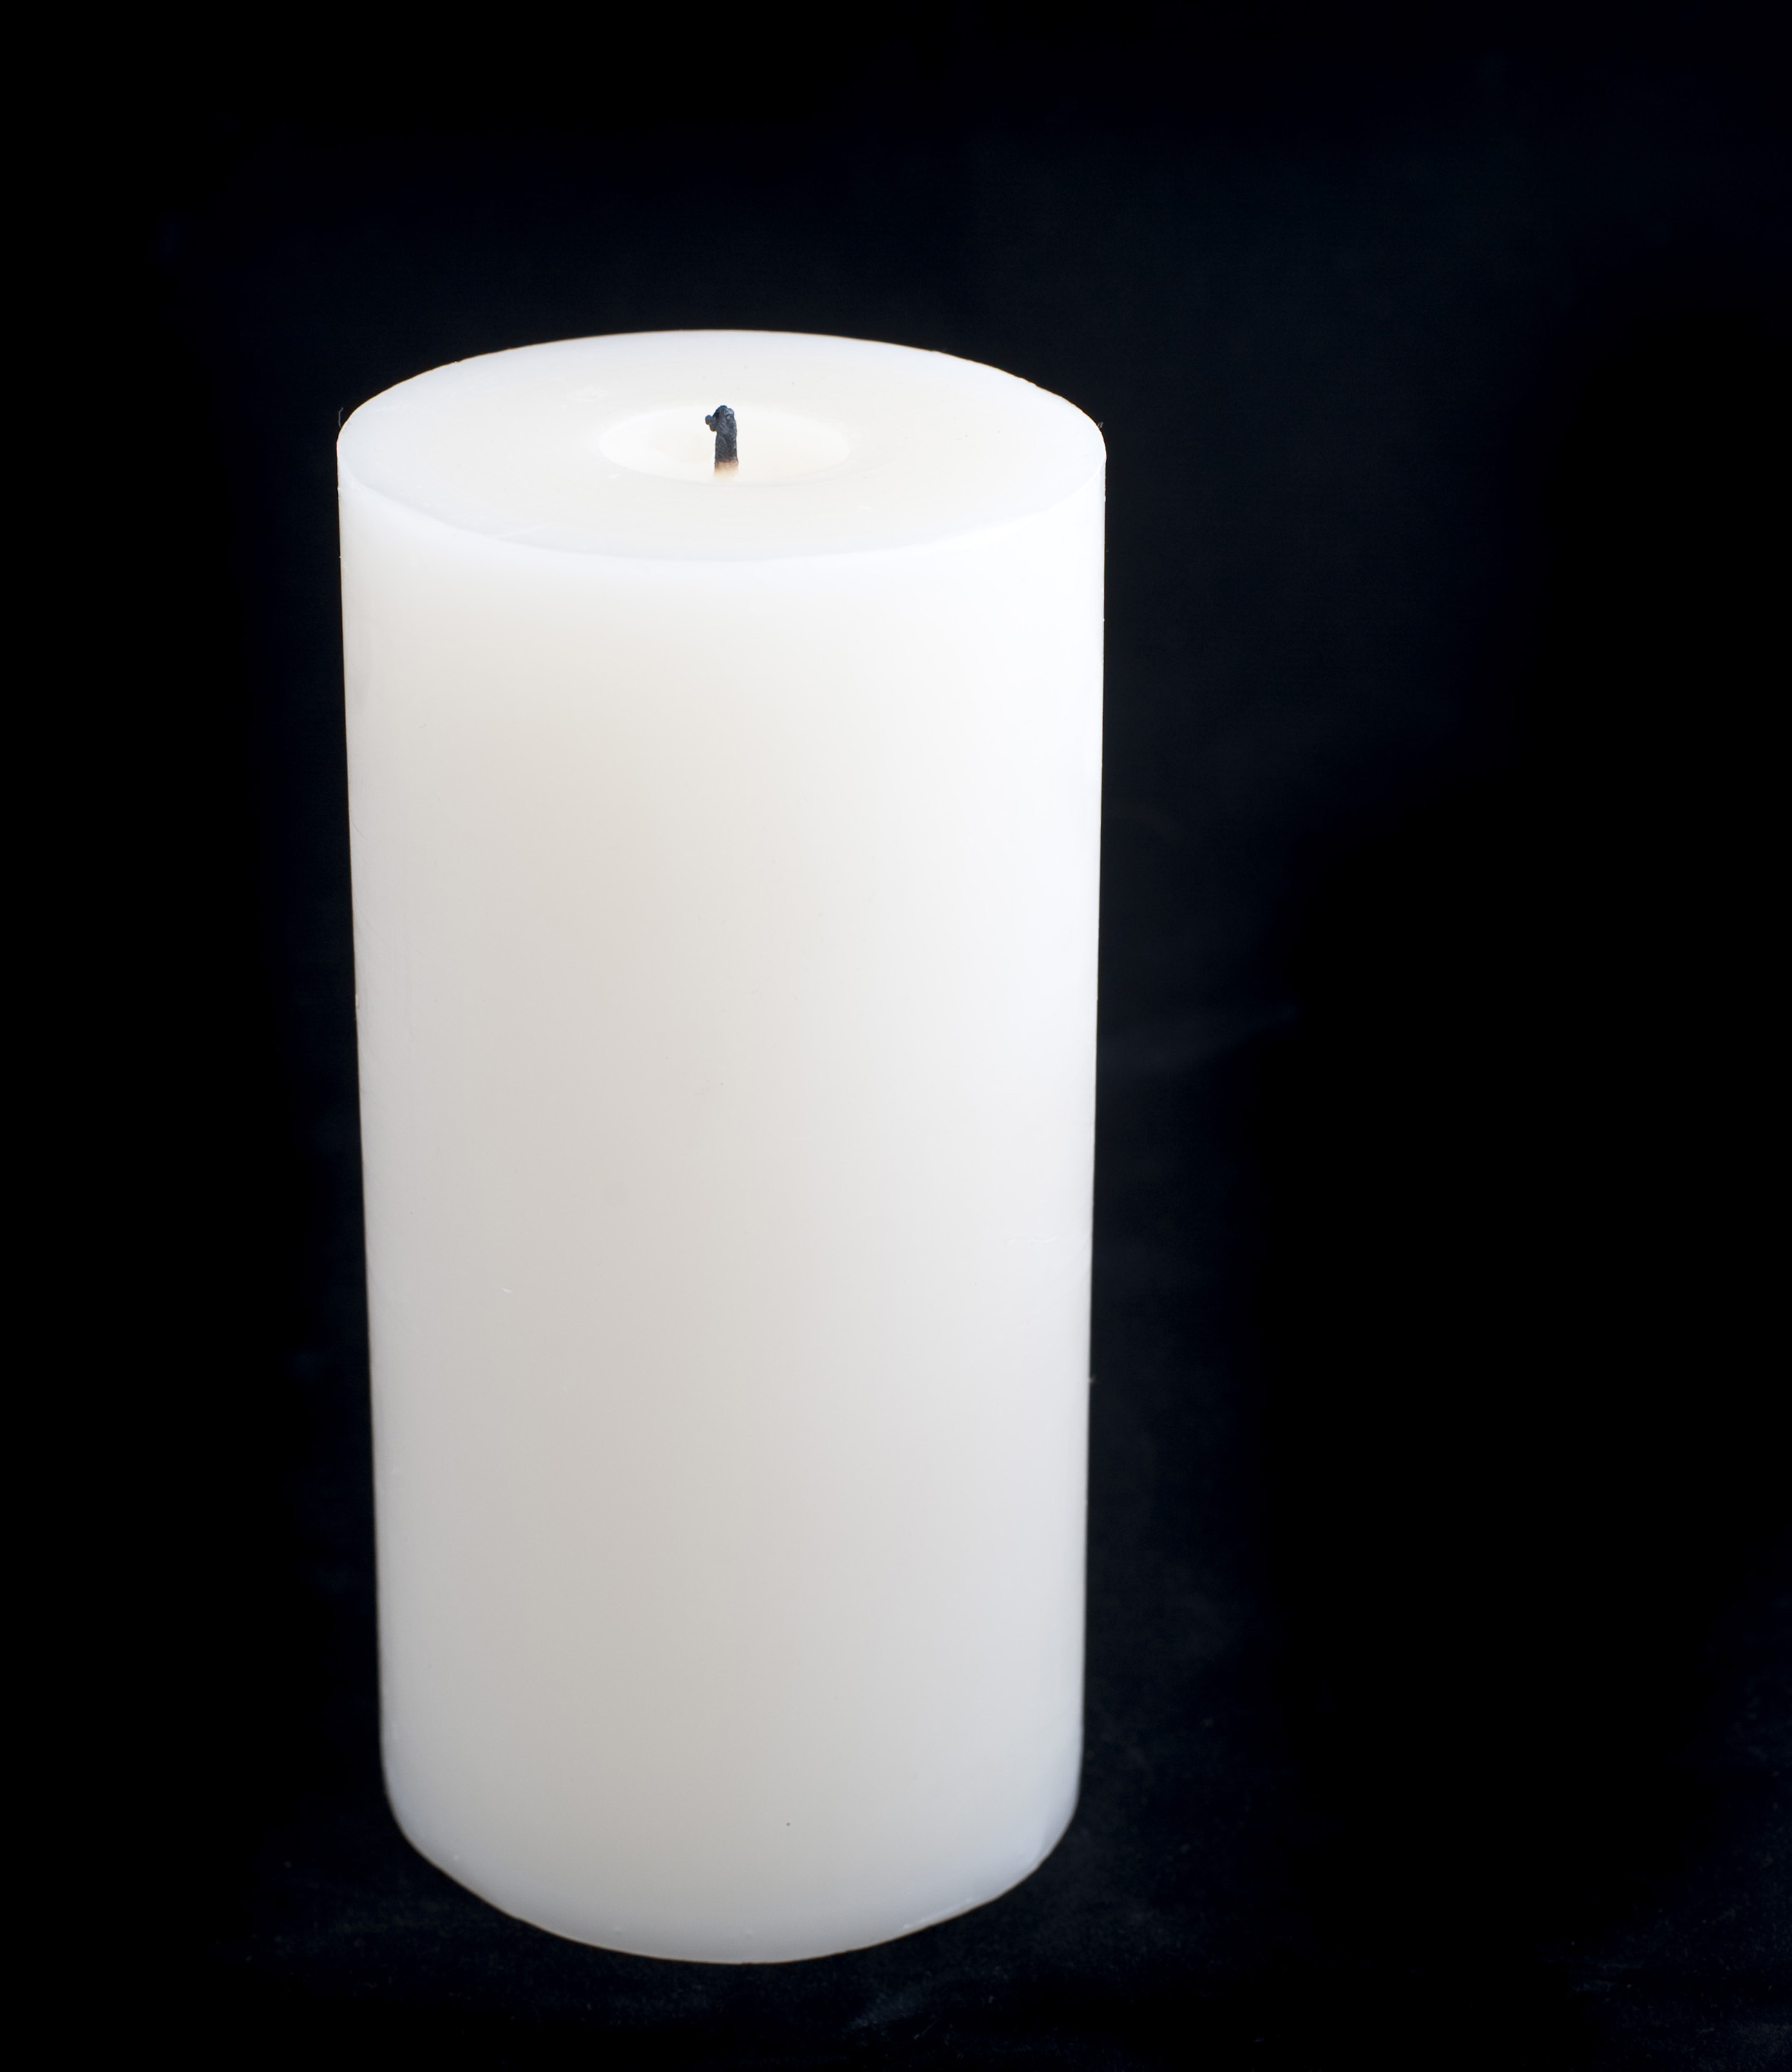 a large pillar candle unlit on a black background